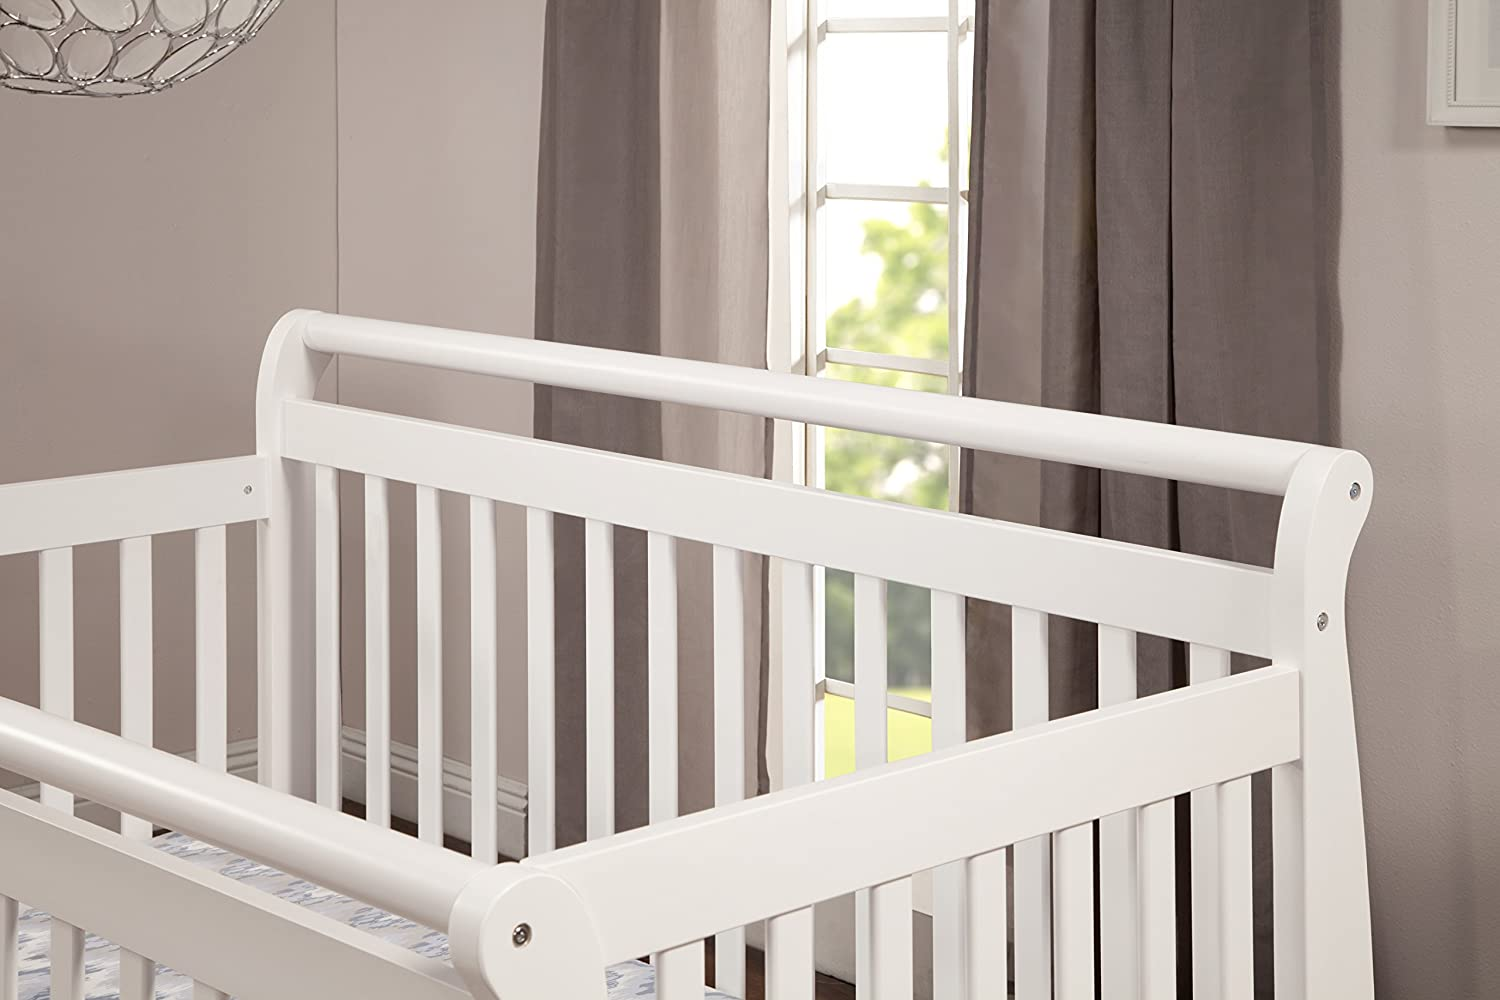 Baby bed hs code - Amazon Com Davinci Emily 4 In 1 Convertible Crib In White Finish White Bed For Infant Baby